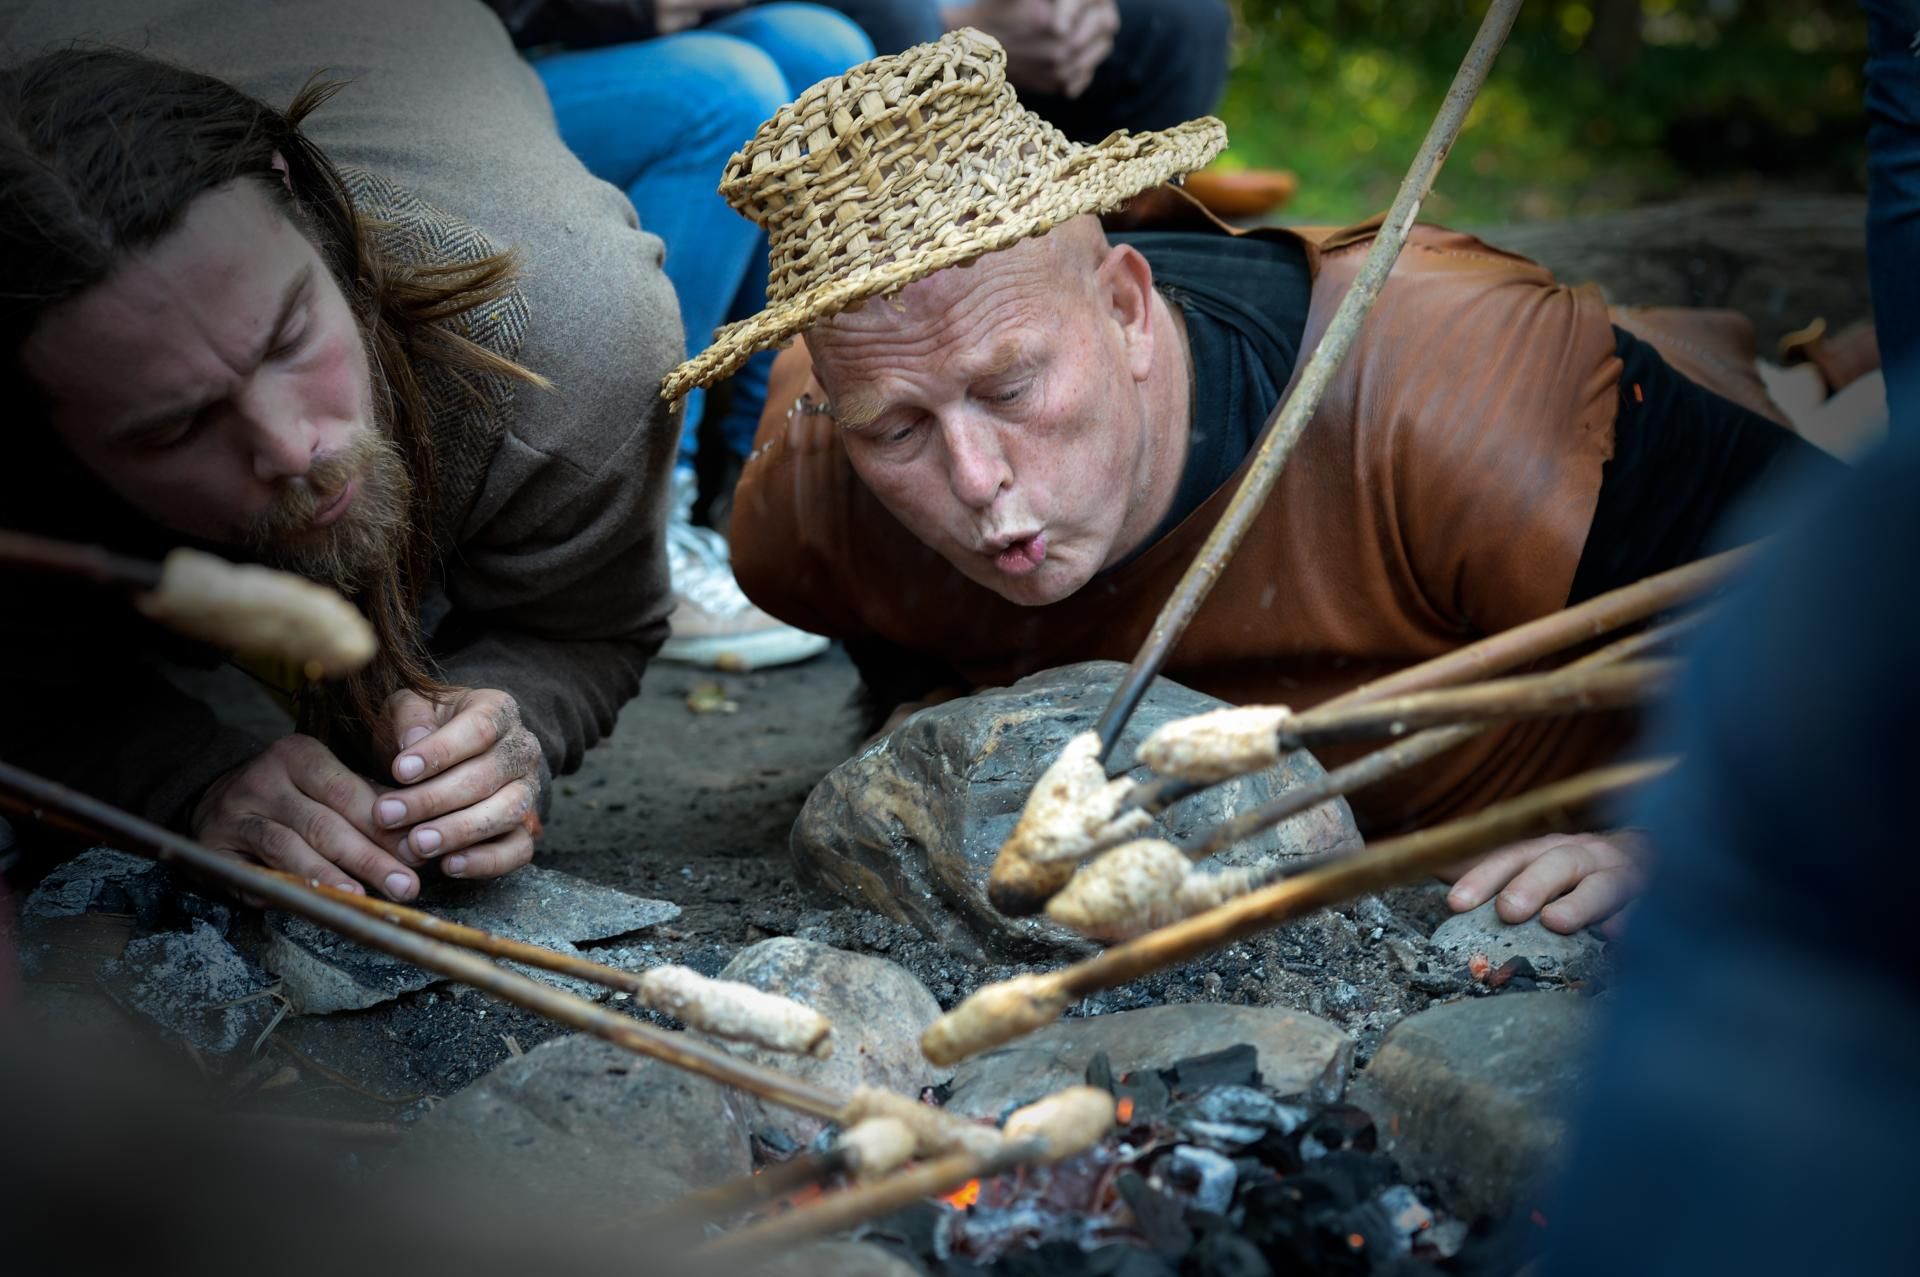 Archeon Culinary